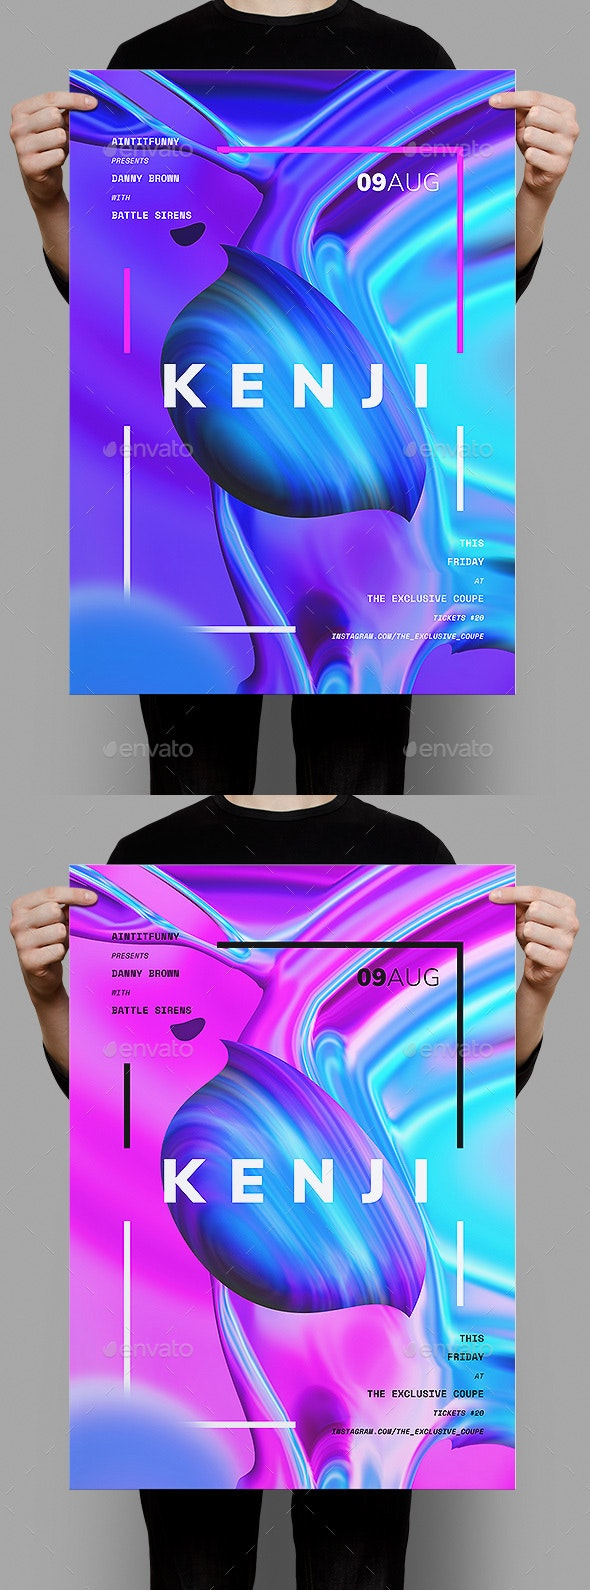 Kenji Poster / Flyer Template - Clubs & Parties Events